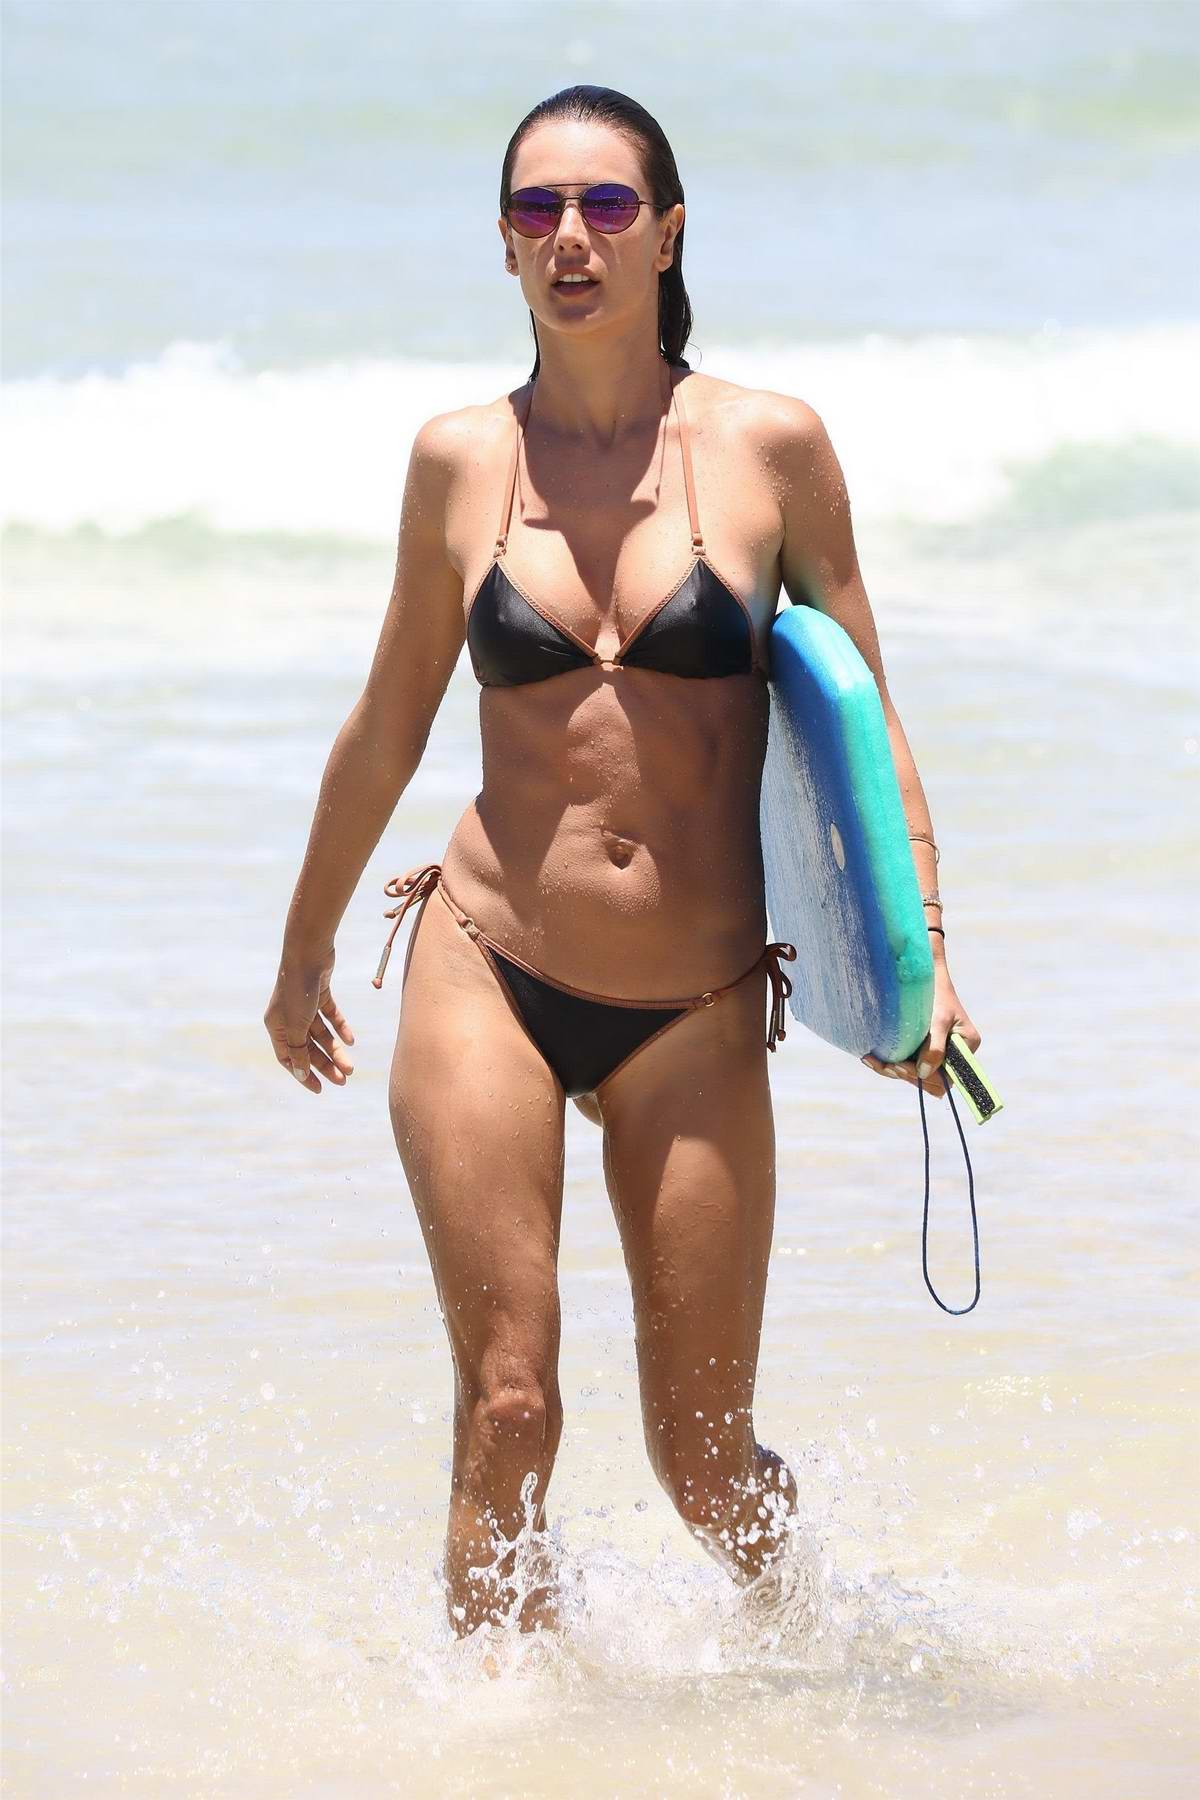 Alessandra ambrosio in swimsuit at the beach in malibu - 2019 year